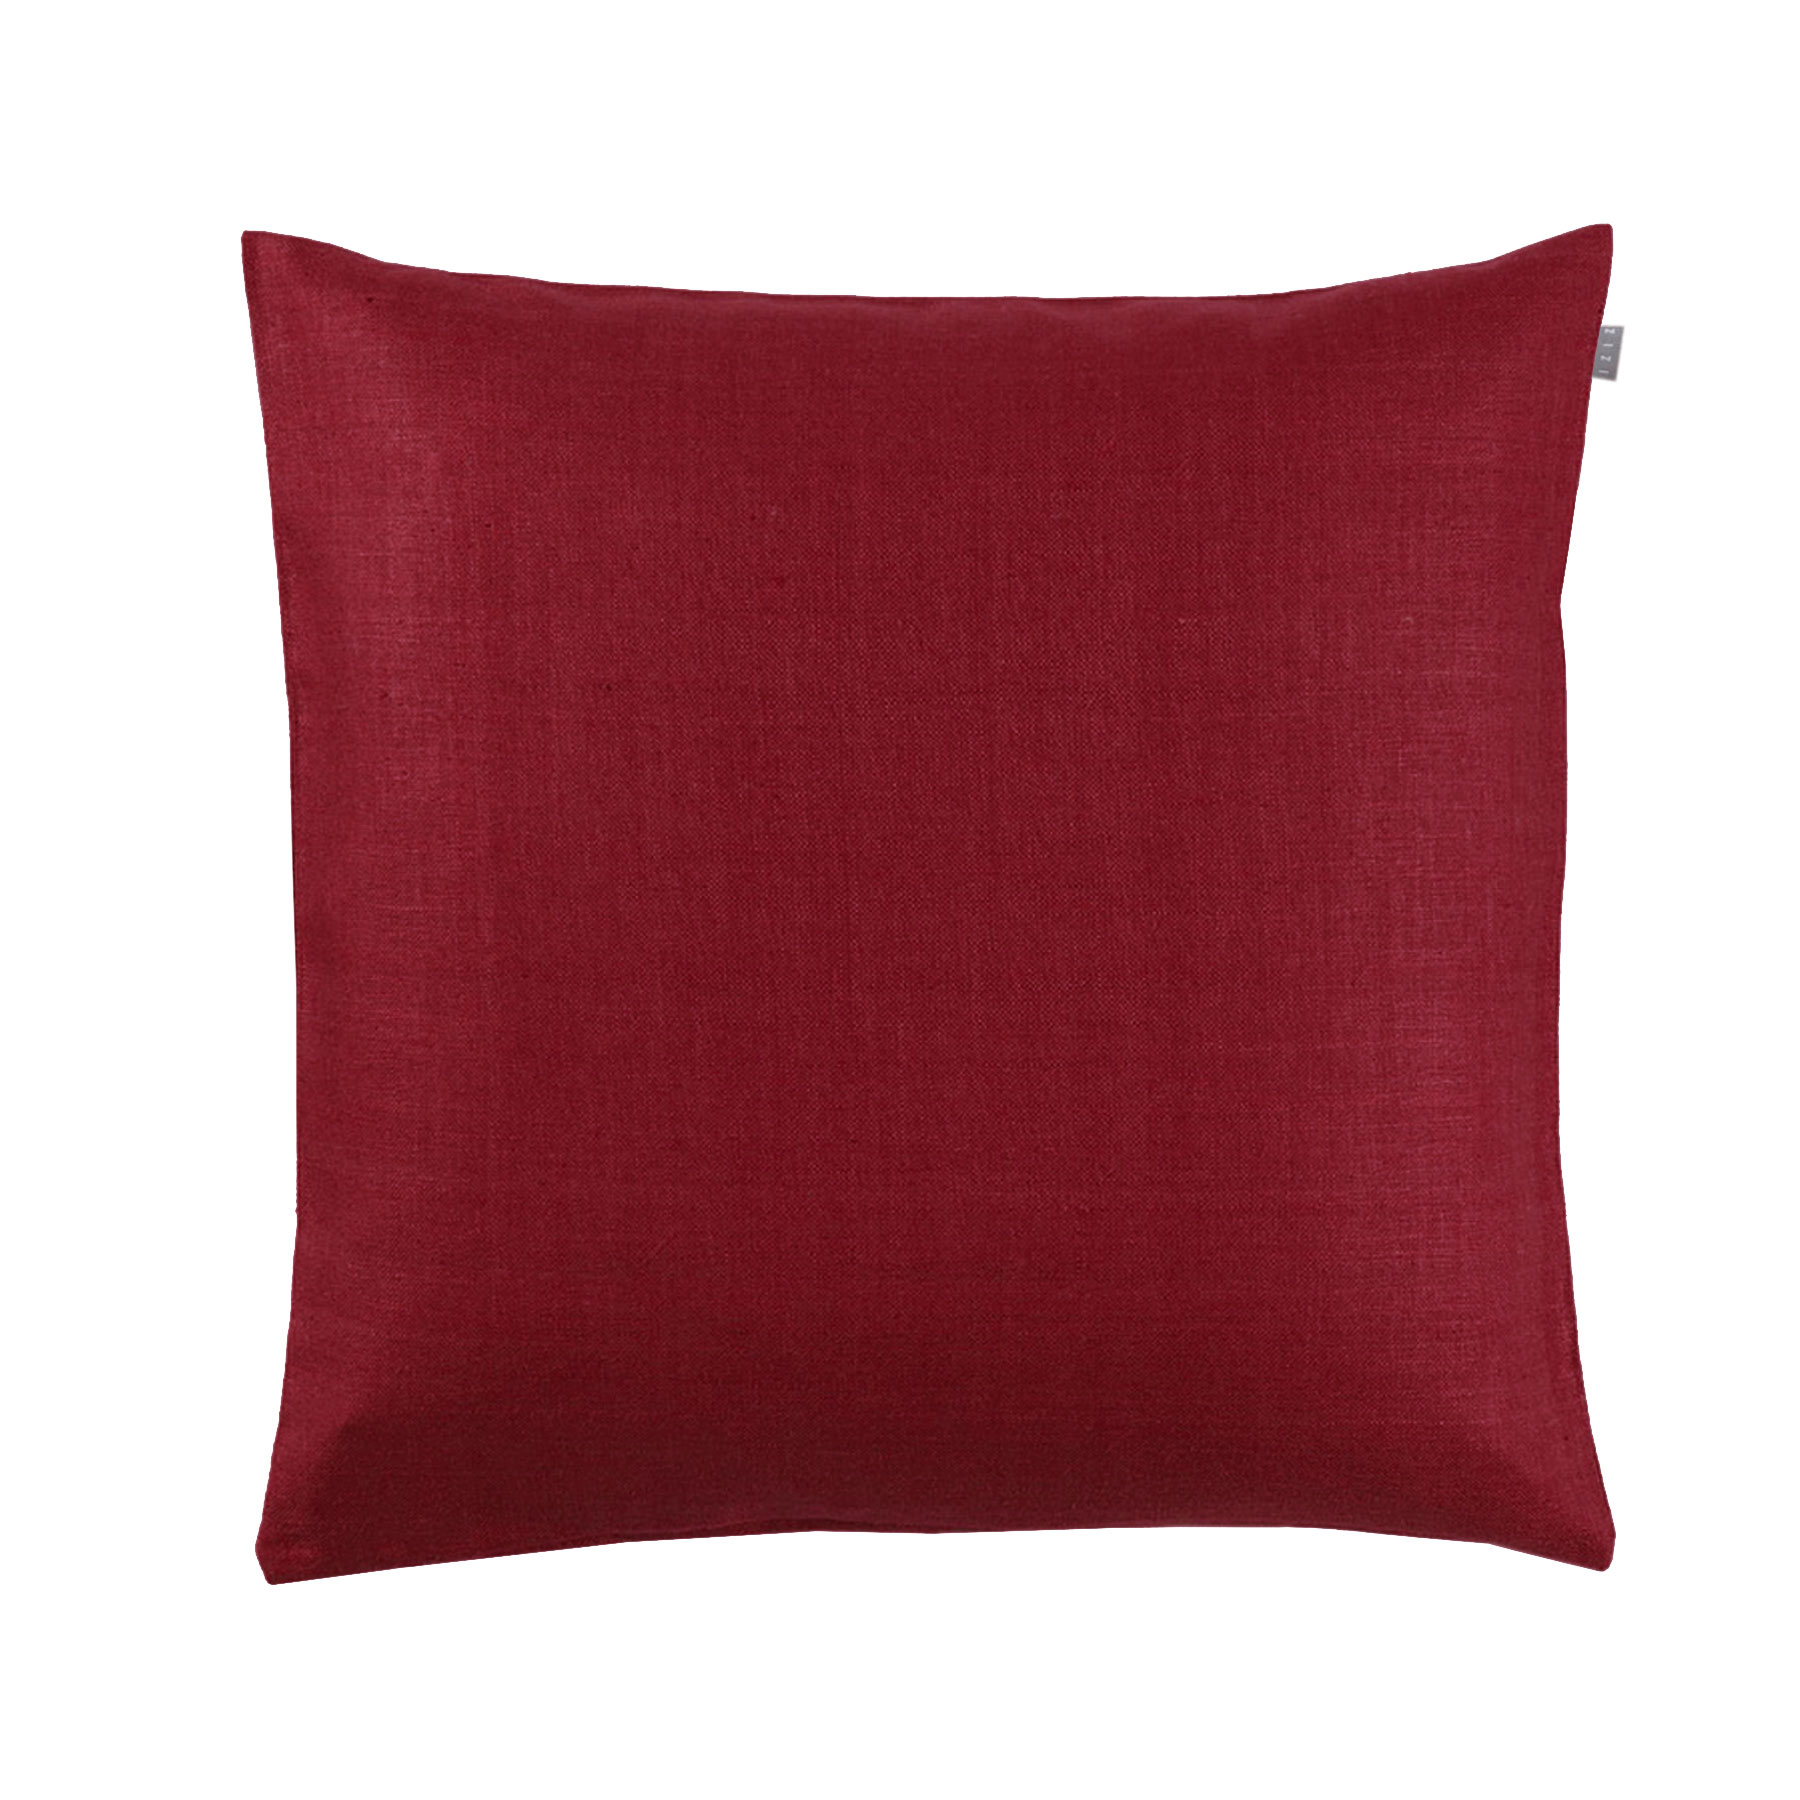 CUSHION COVER PLAIN <br />tango red